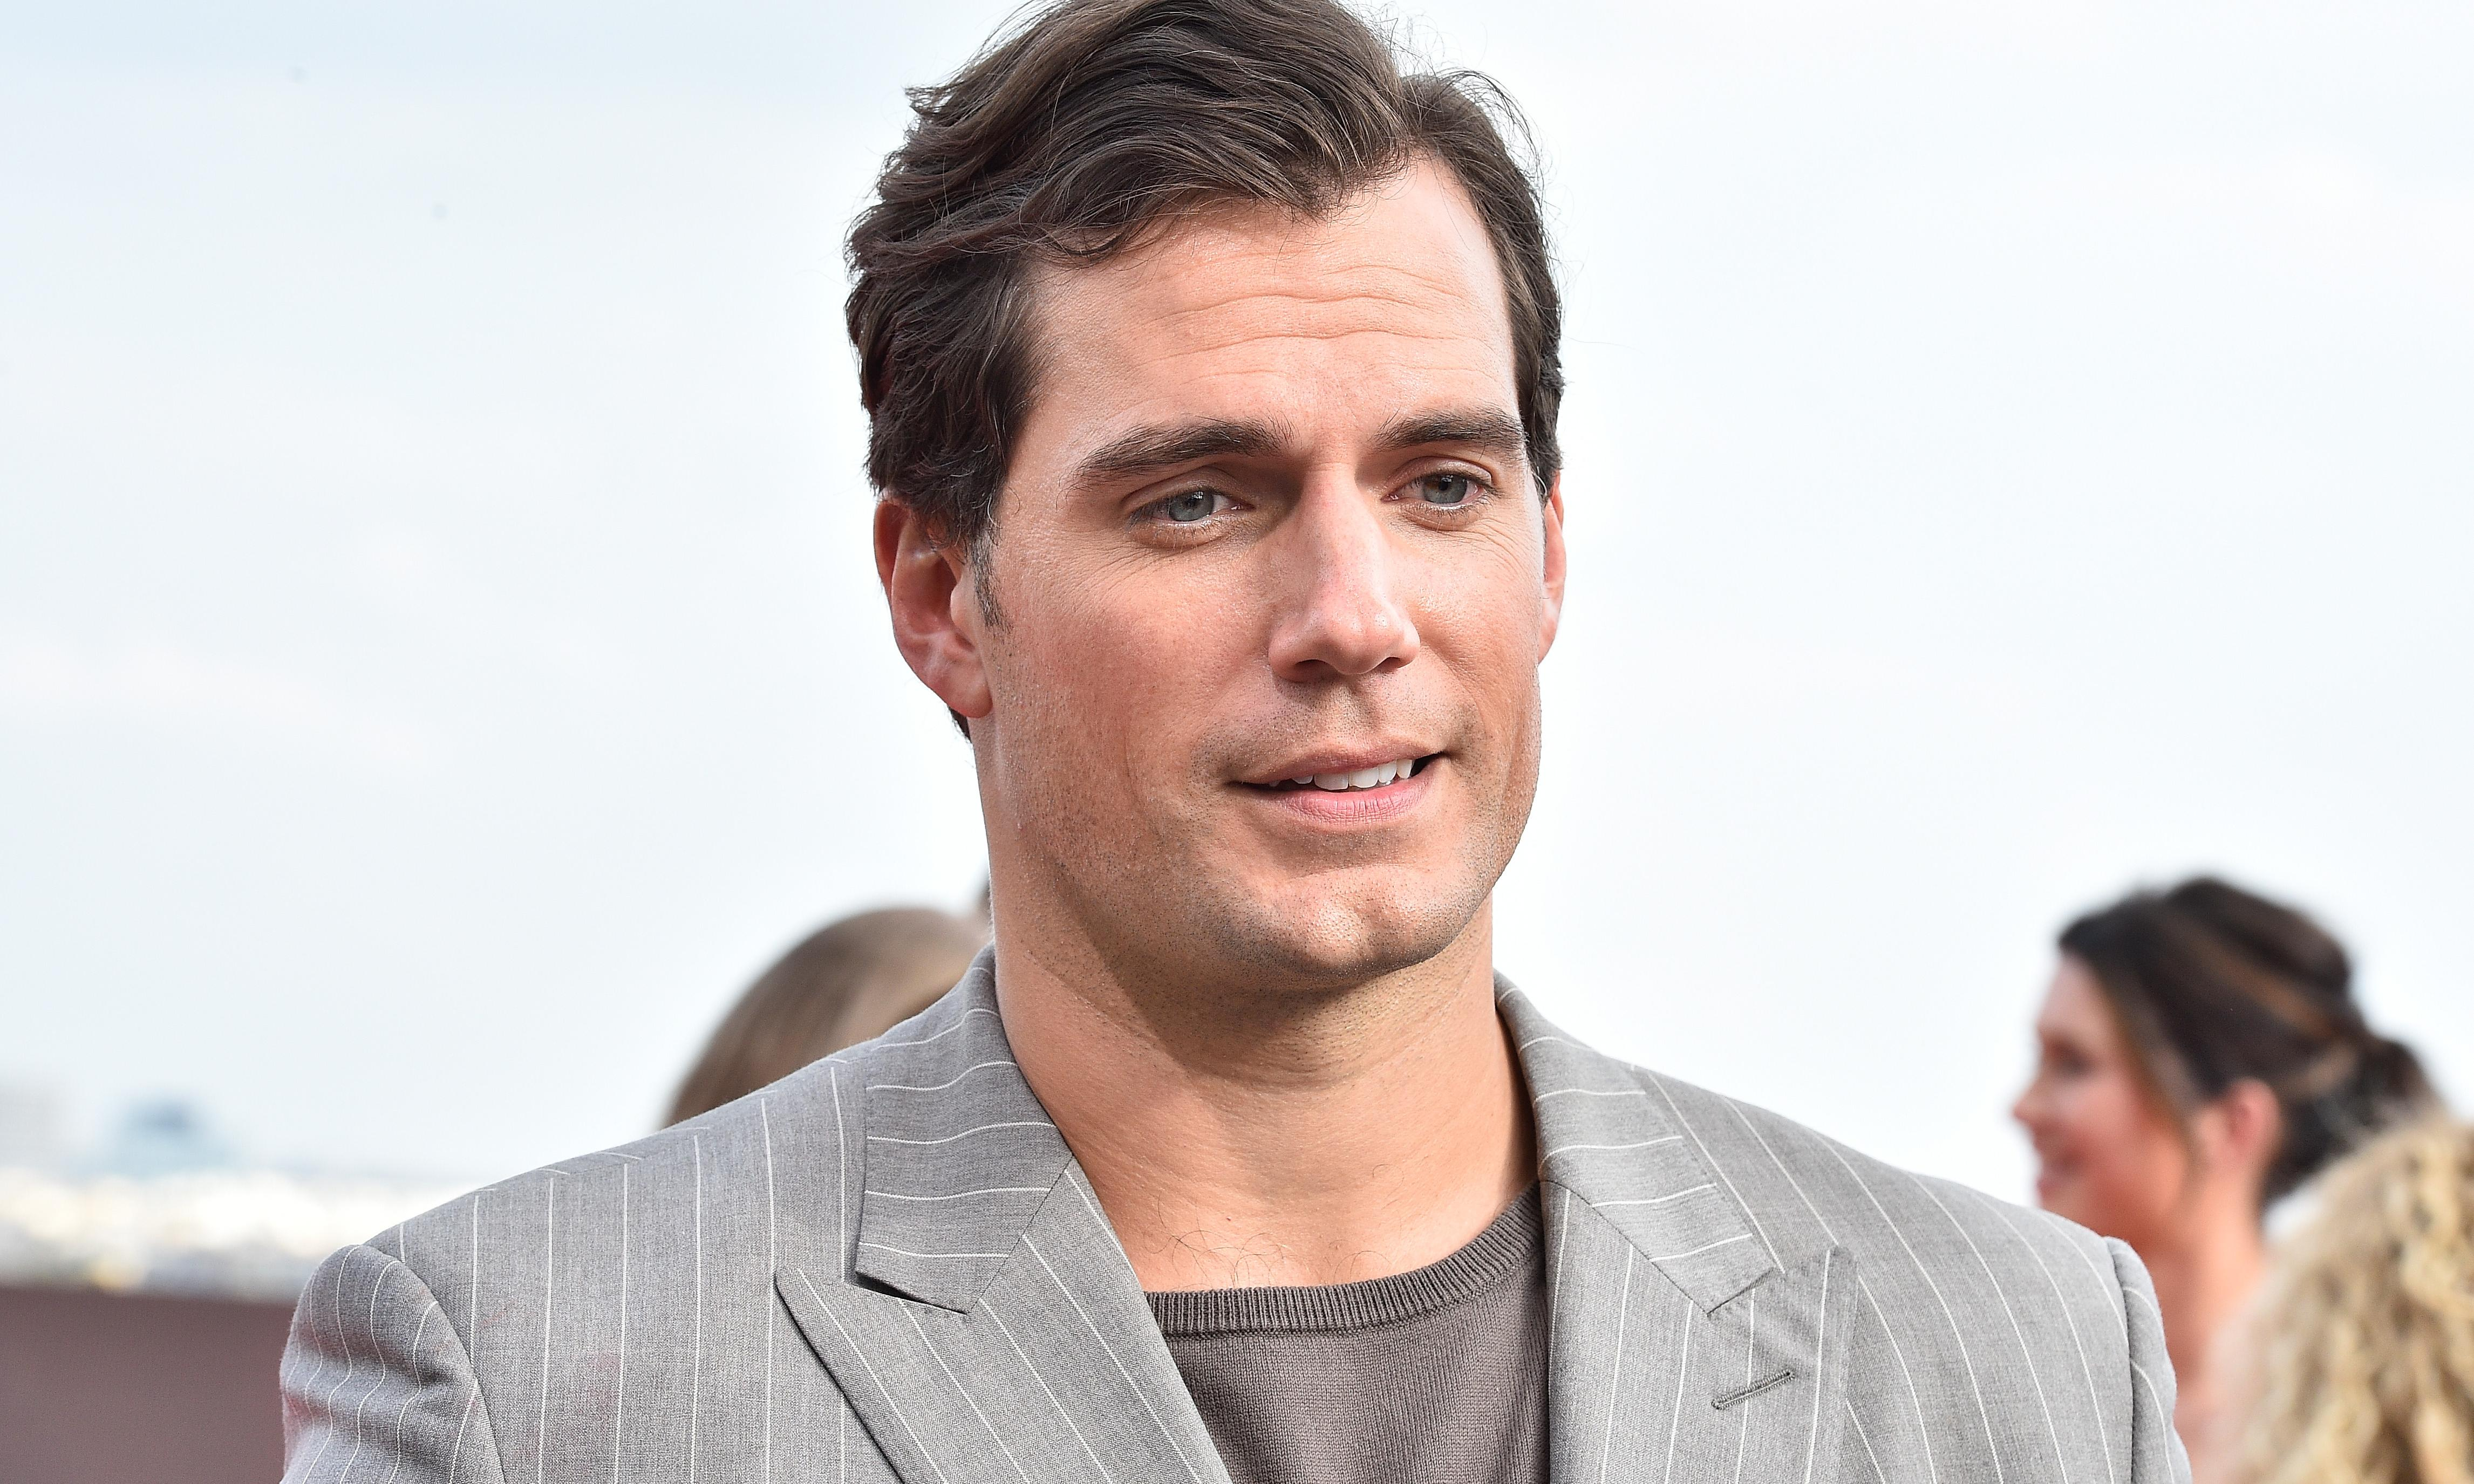 Henry Cavill apologises for comments on #MeToo